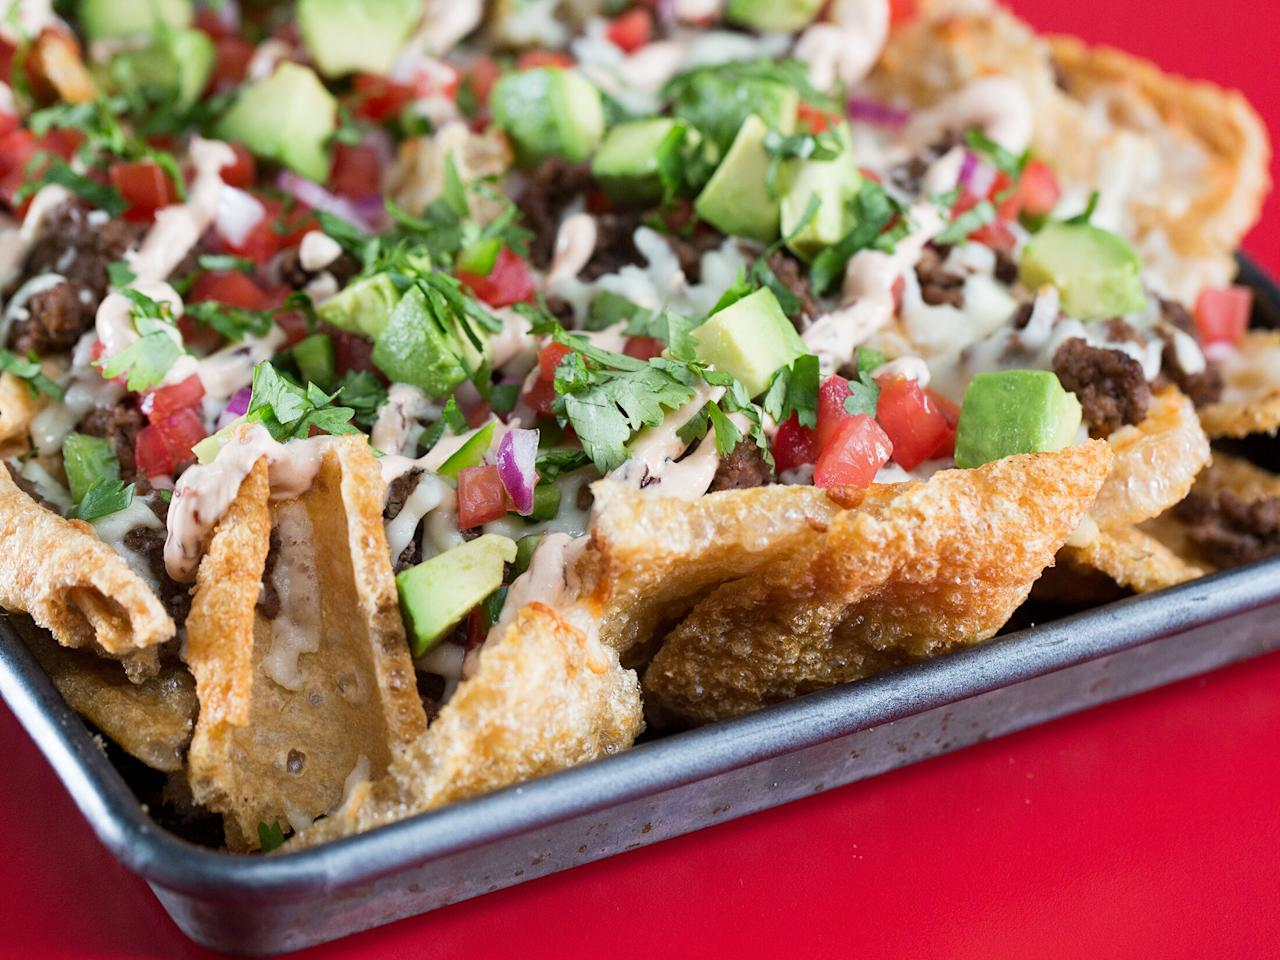 "We've got the perfect way to satisfy a high-carb craving without getting off your low-carb diet. These nachos are hearty and slightly chewy with a little bit of lightness. Balance the rich meat and cheese with creamy chipotle sauce and pico topping. Distribute the toppings evenly and work them into the spaces and crevices. This way, each ""chip"" gets toppings and the center doesn't end up a soggy mess.The best pork skins to use for this recipe are chicharrones, which are firmer and crispier. You can find them in large ""sheets"" at international markets or grocery stores. <a href=""https://www.myrecipes.com/recipe/keto-nachos"">Keto Nachos Recipe</a>"